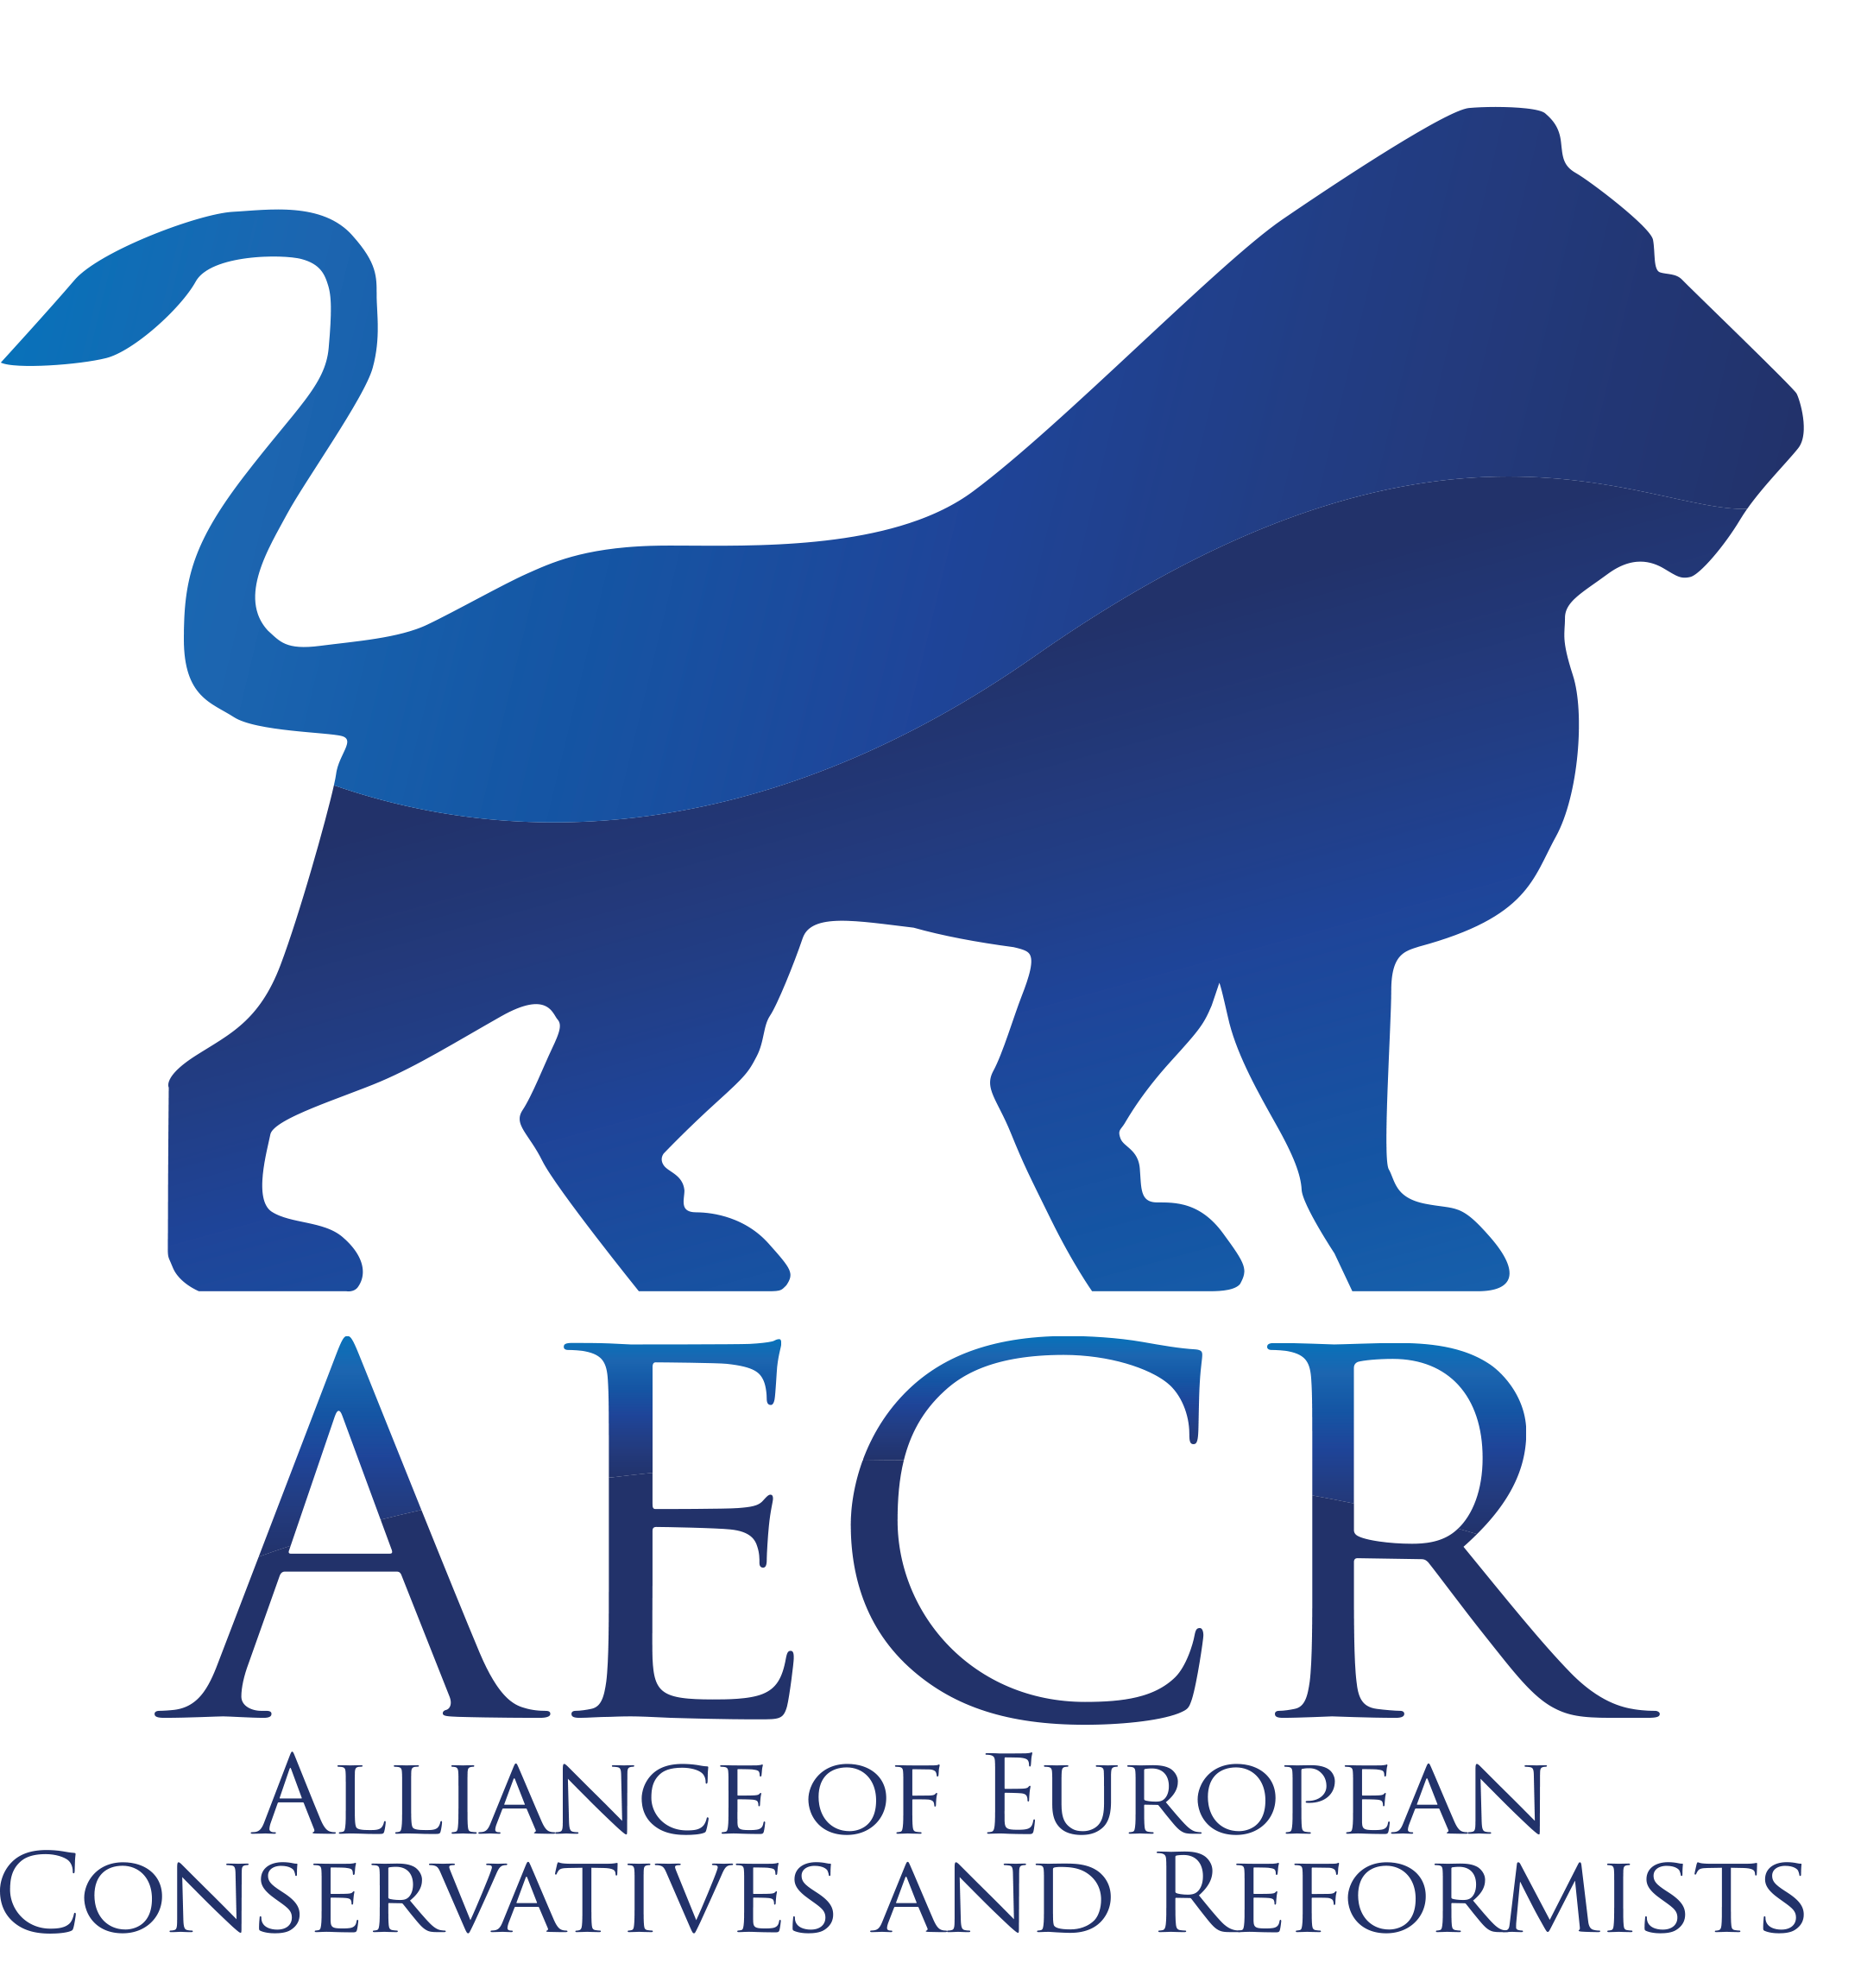 Alliance of european conservatives. Democracy clipart conservatism